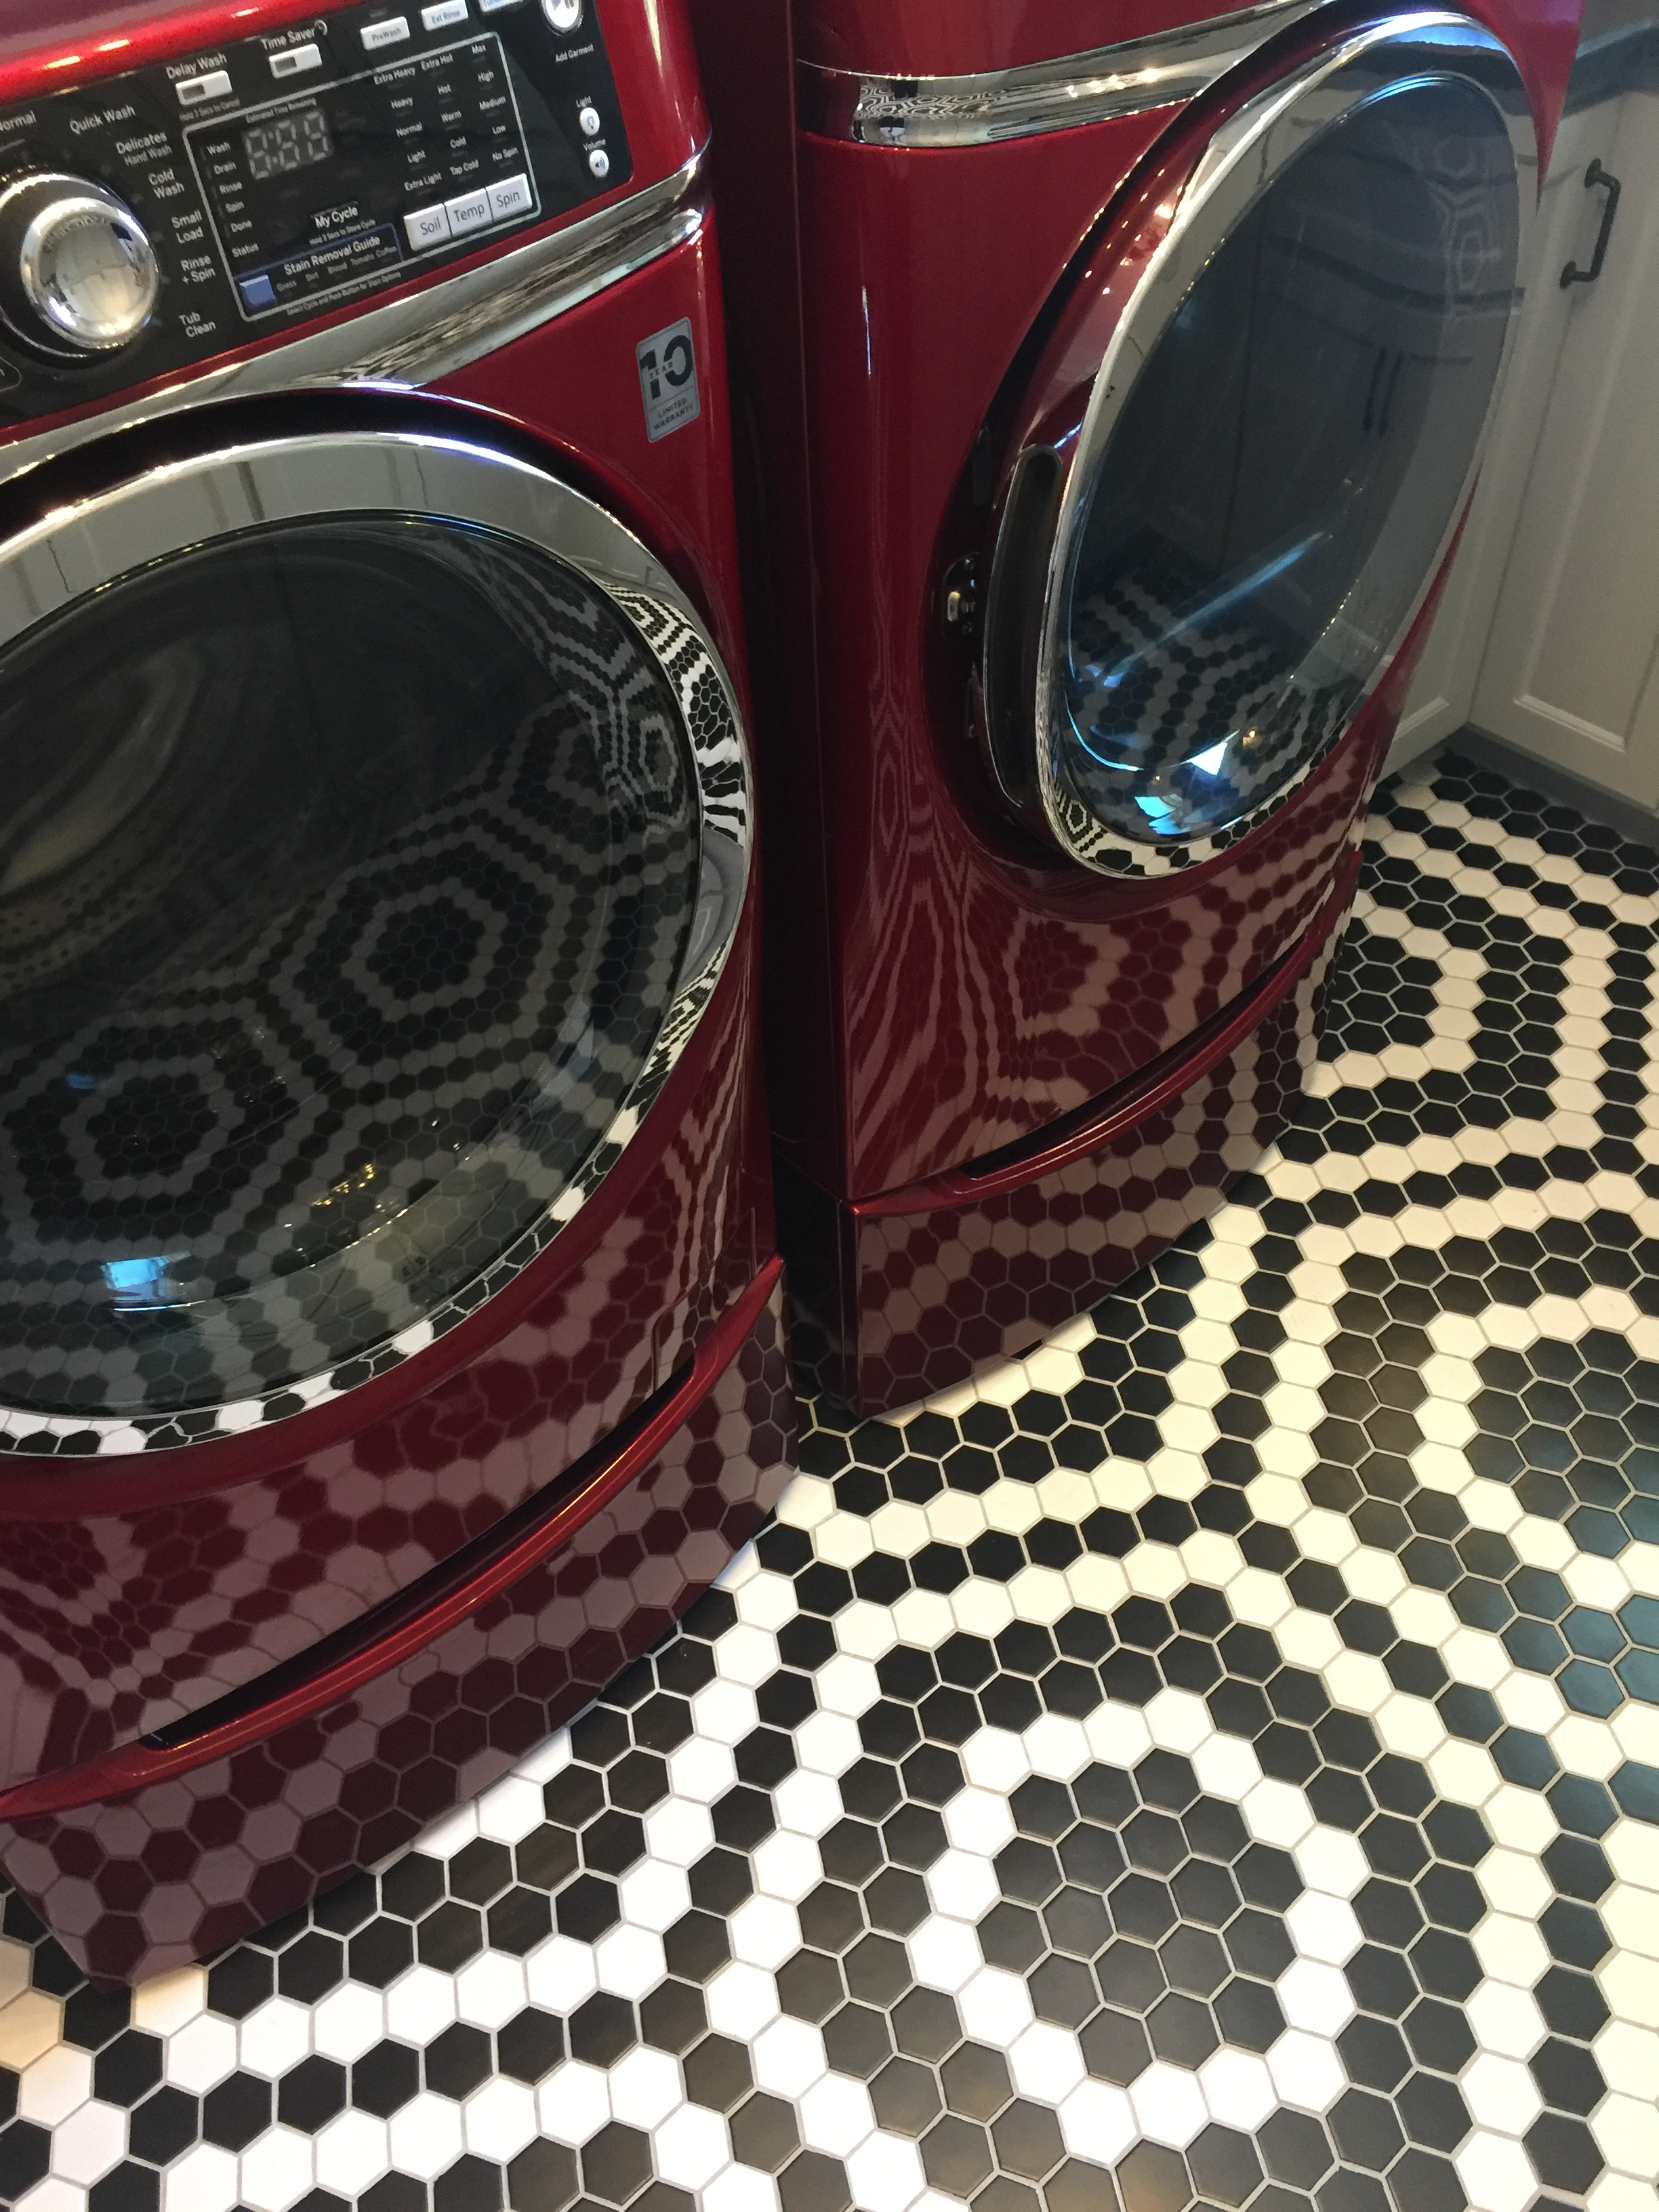 Southern Living Showcase Home - laundry room with red appliances and black and white tile floor, Designed by Chairma Design Group #blackandwhite #tilefloor #blackandwhitefloor